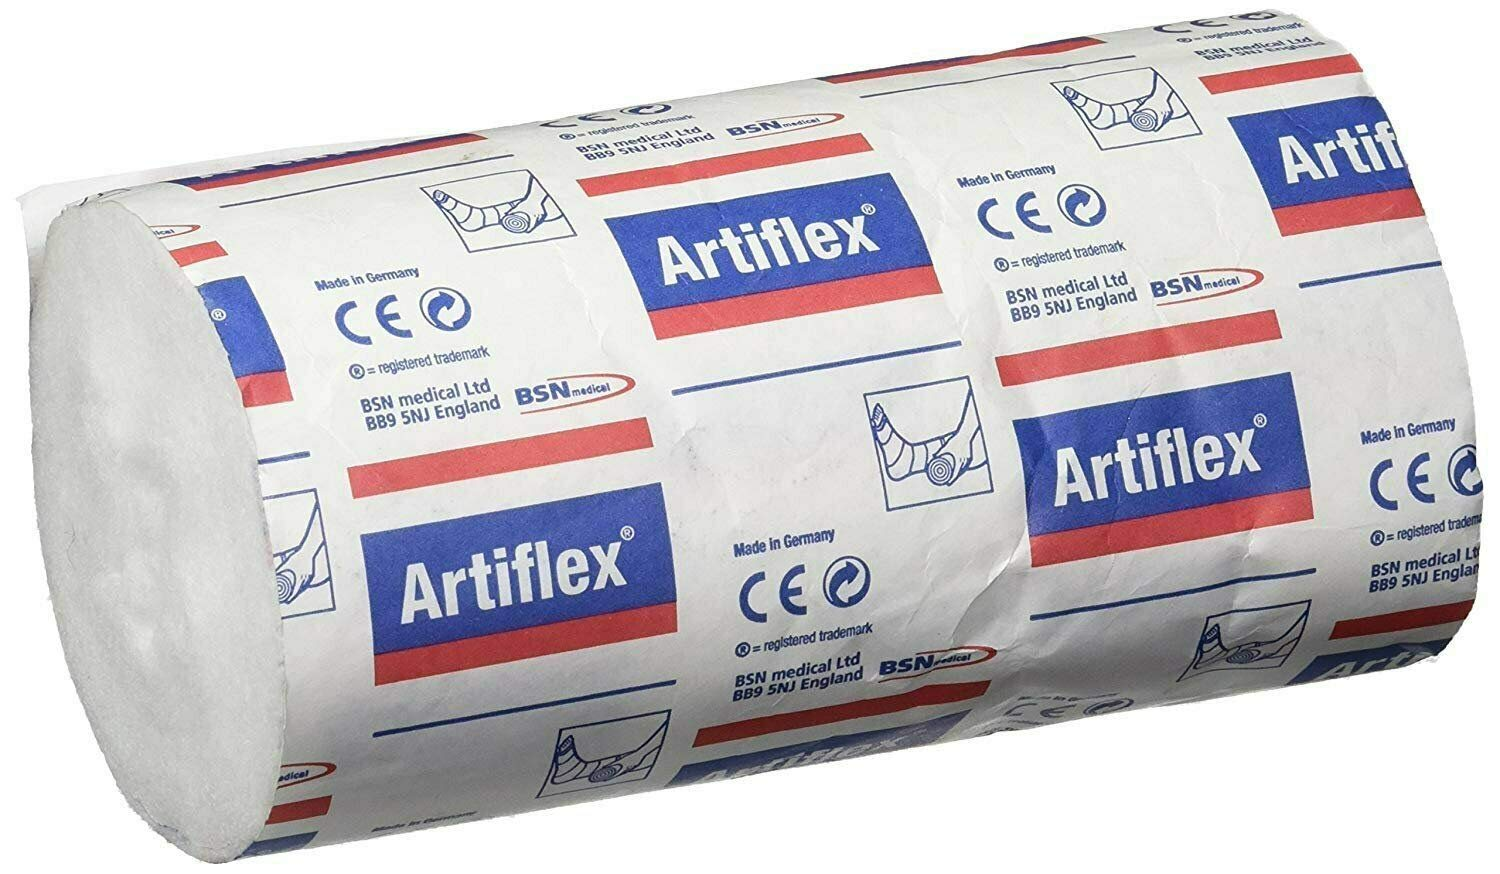 Artiflex Non-Woven Bandage, 5.9'' x 9.8' (15cm x 3m) roll, Case of 20, for Lymphedema Compression by Artiflex